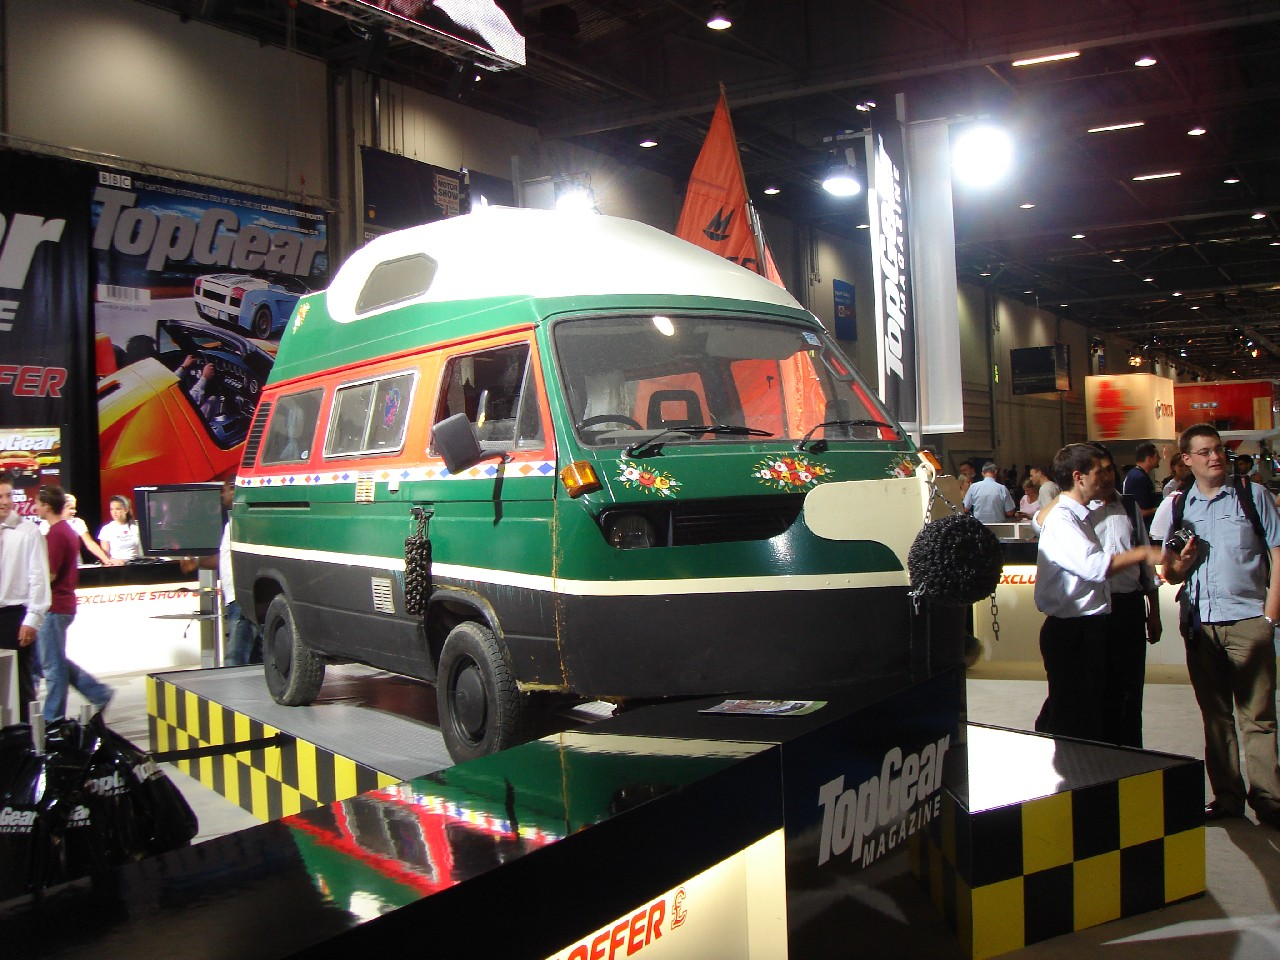 Top Gear Camper Van Boat